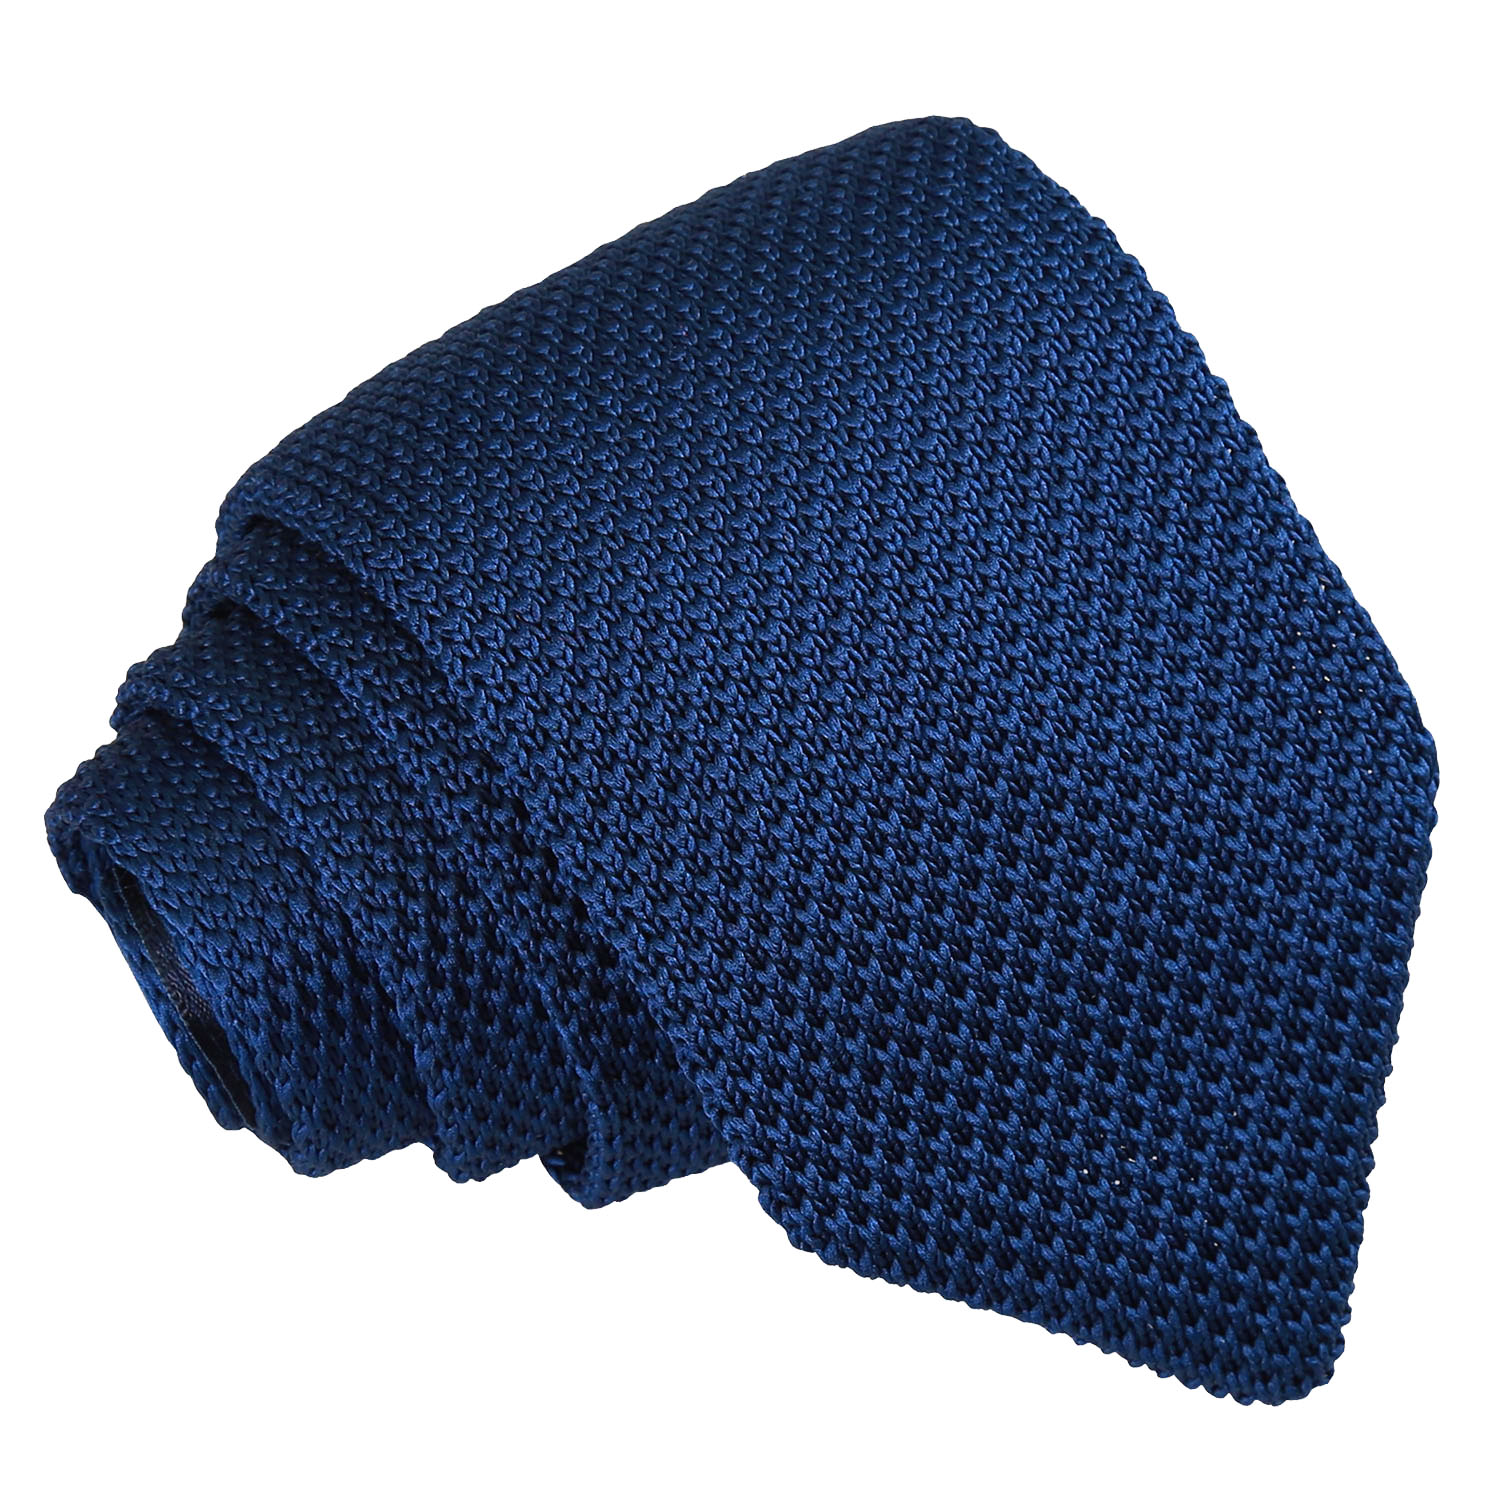 The Benchmark Basics Silk Knit tie uses extra thick knit silk fabric and tapers less than other knit ties, which results in a sturdier knot and polished look. Extra thick, % silk, ties a sturdier k.